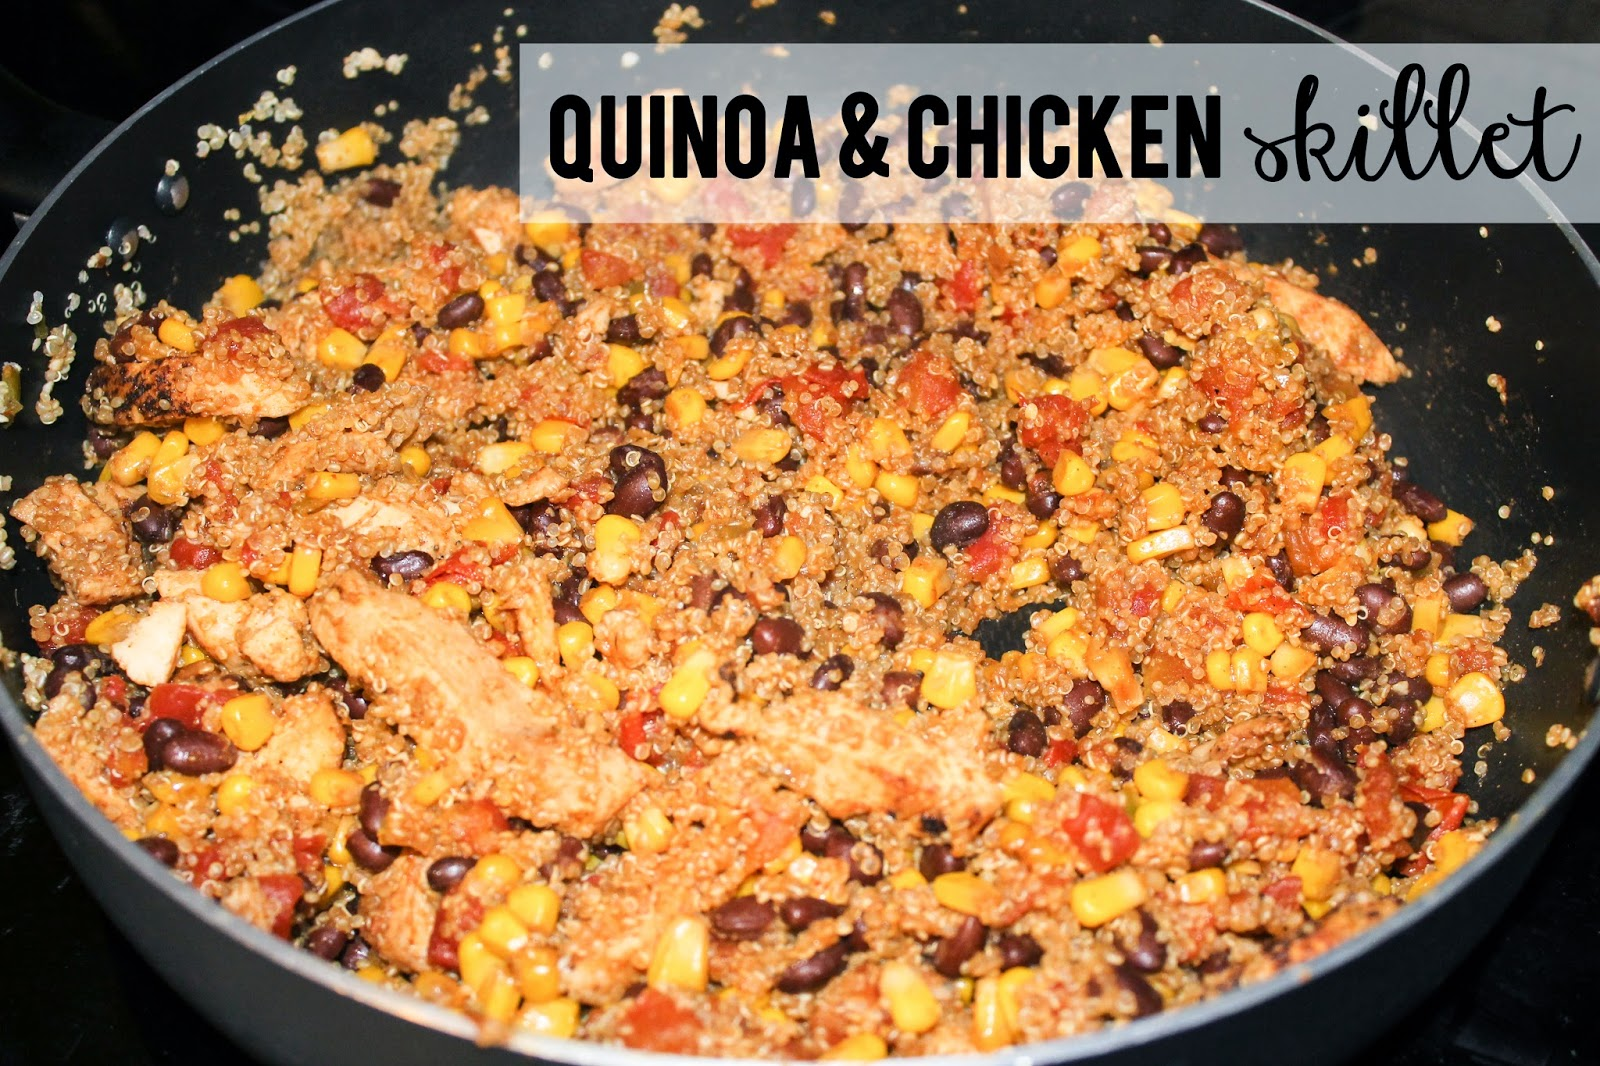 Quinoa & chicken skillet